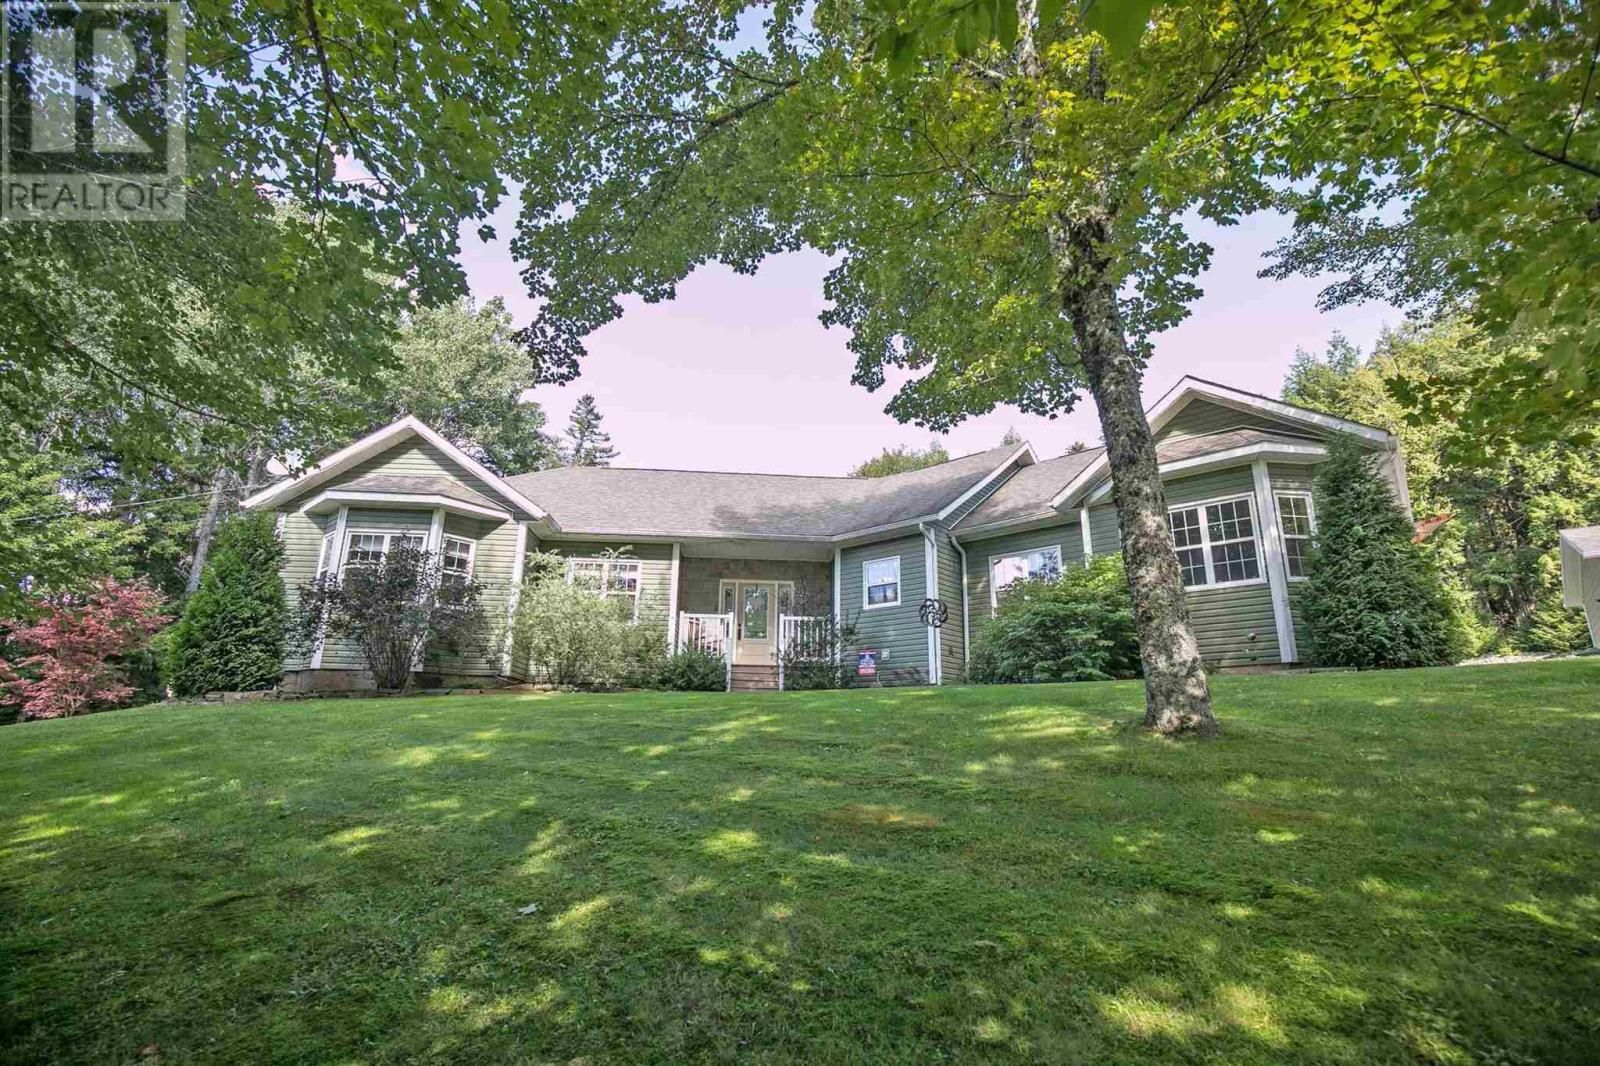 Main Photo: 390 Wyvern Road in Wyvern: House for sale : MLS®# 202123297